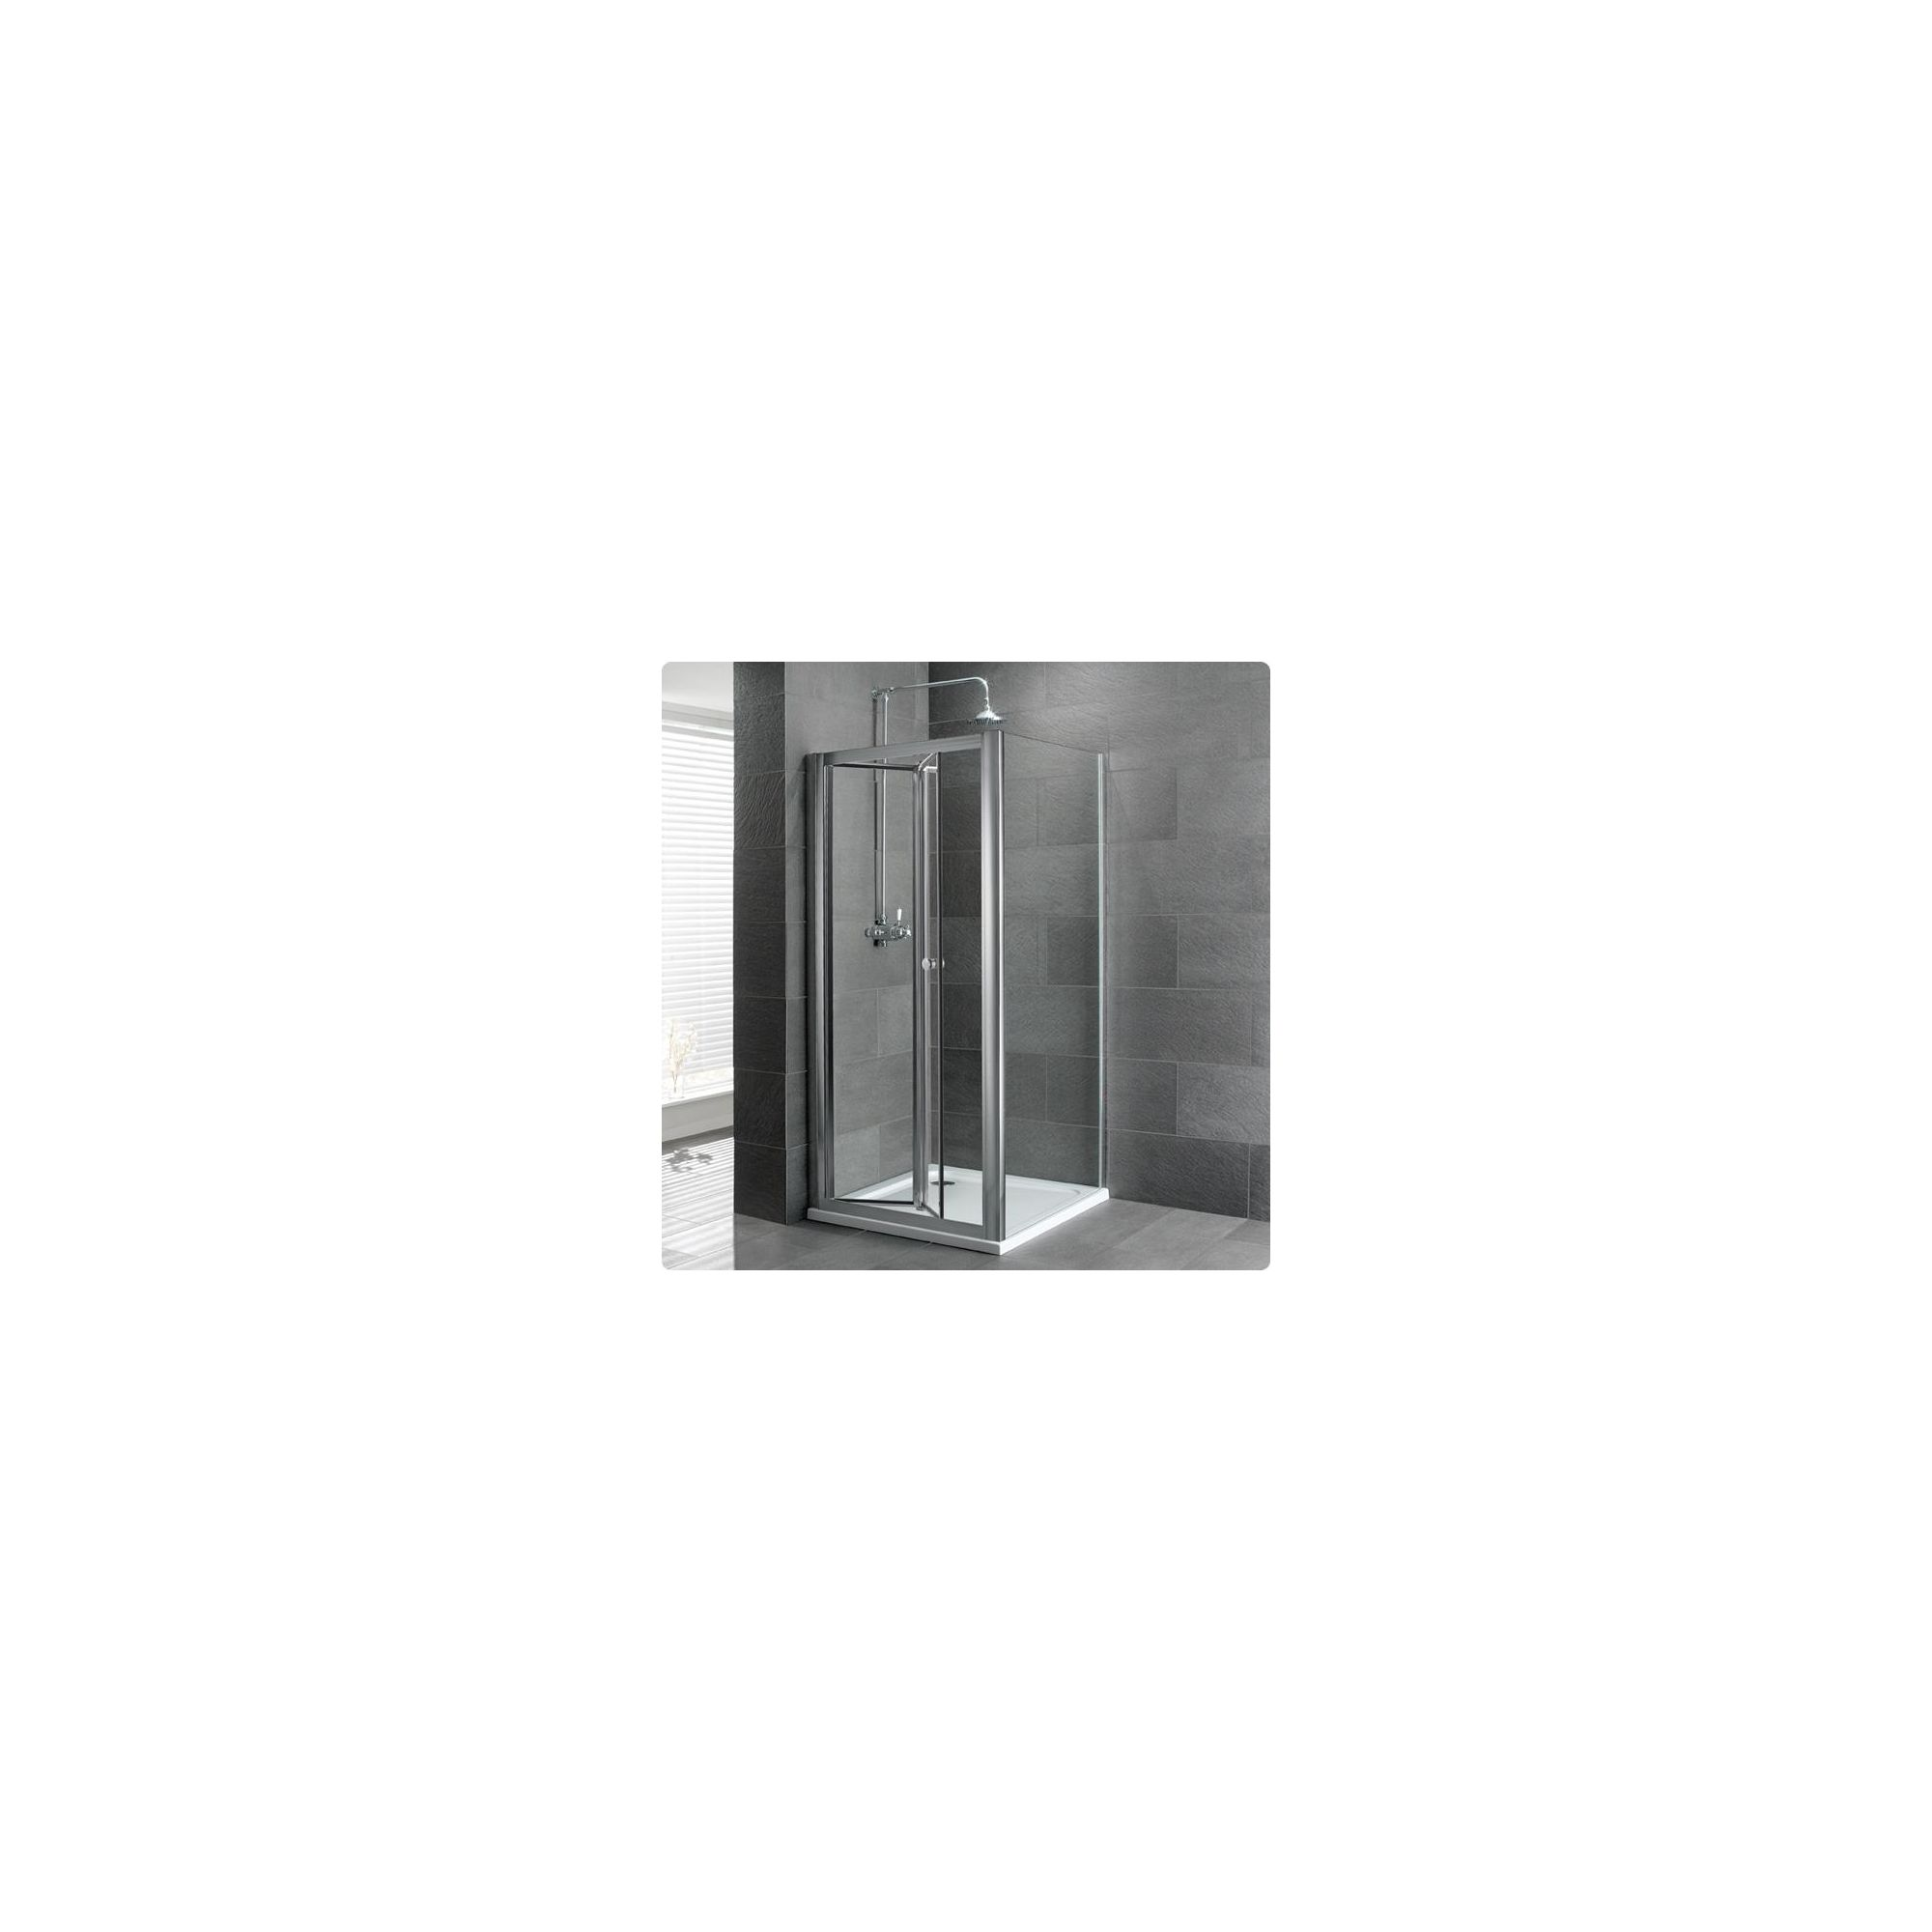 Duchy Select Silver Bi-Fold Door Shower Enclosure, 800mm x 800mm, Standard Tray, 6mm Glass at Tescos Direct